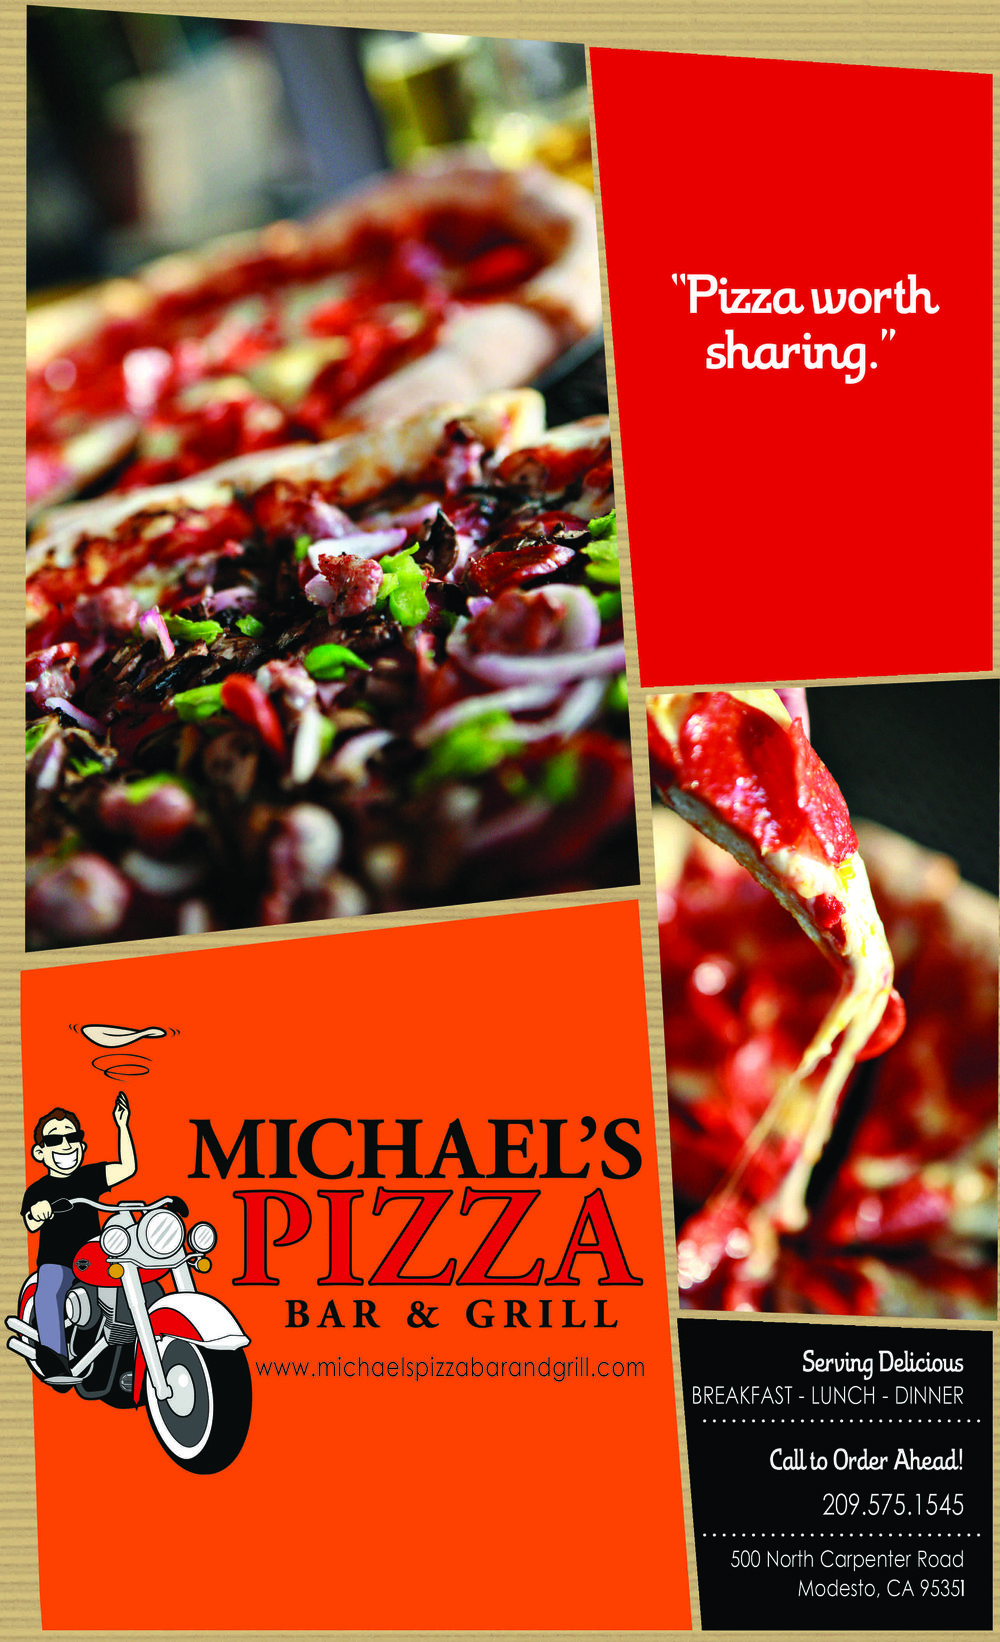 Michaels Pizza Menu.jpg